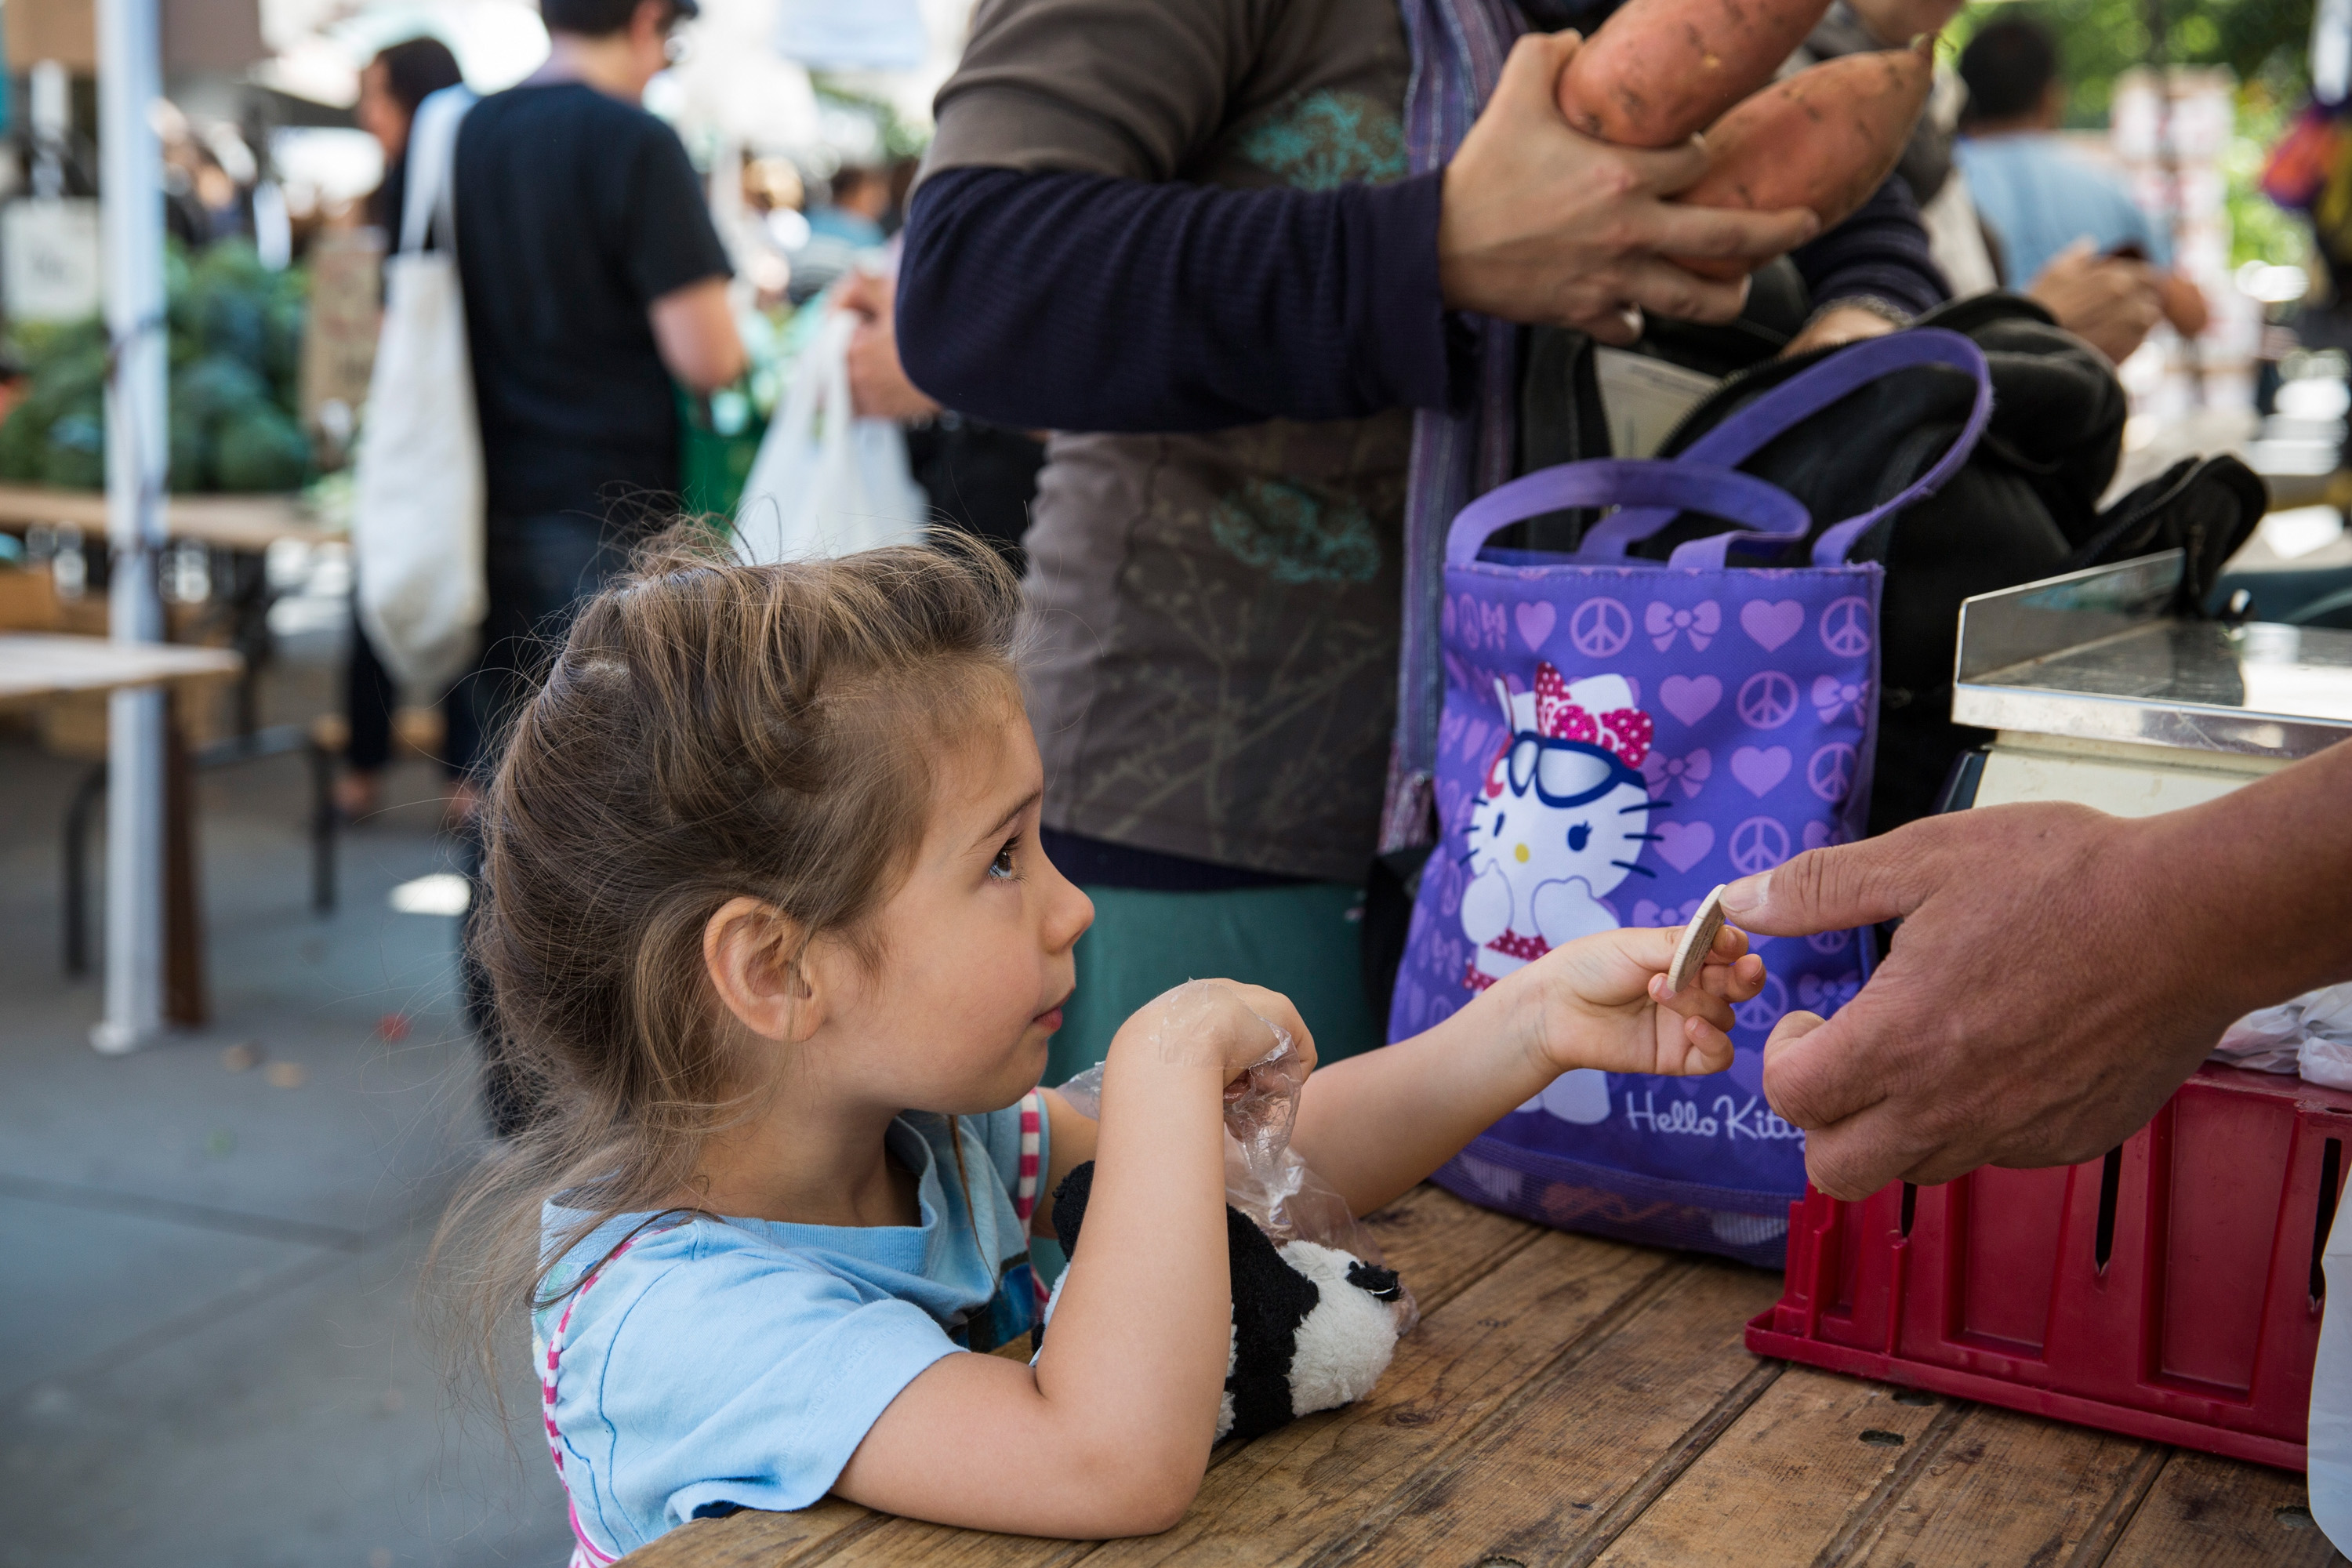 A girl pays for her mother's groceries using Electronic Benefits Transfer (EBT) tokens, more commonly known as Food Stamps, at the GrowNYC Greenmarket in Union Square on September 18, 2013 in New York City.